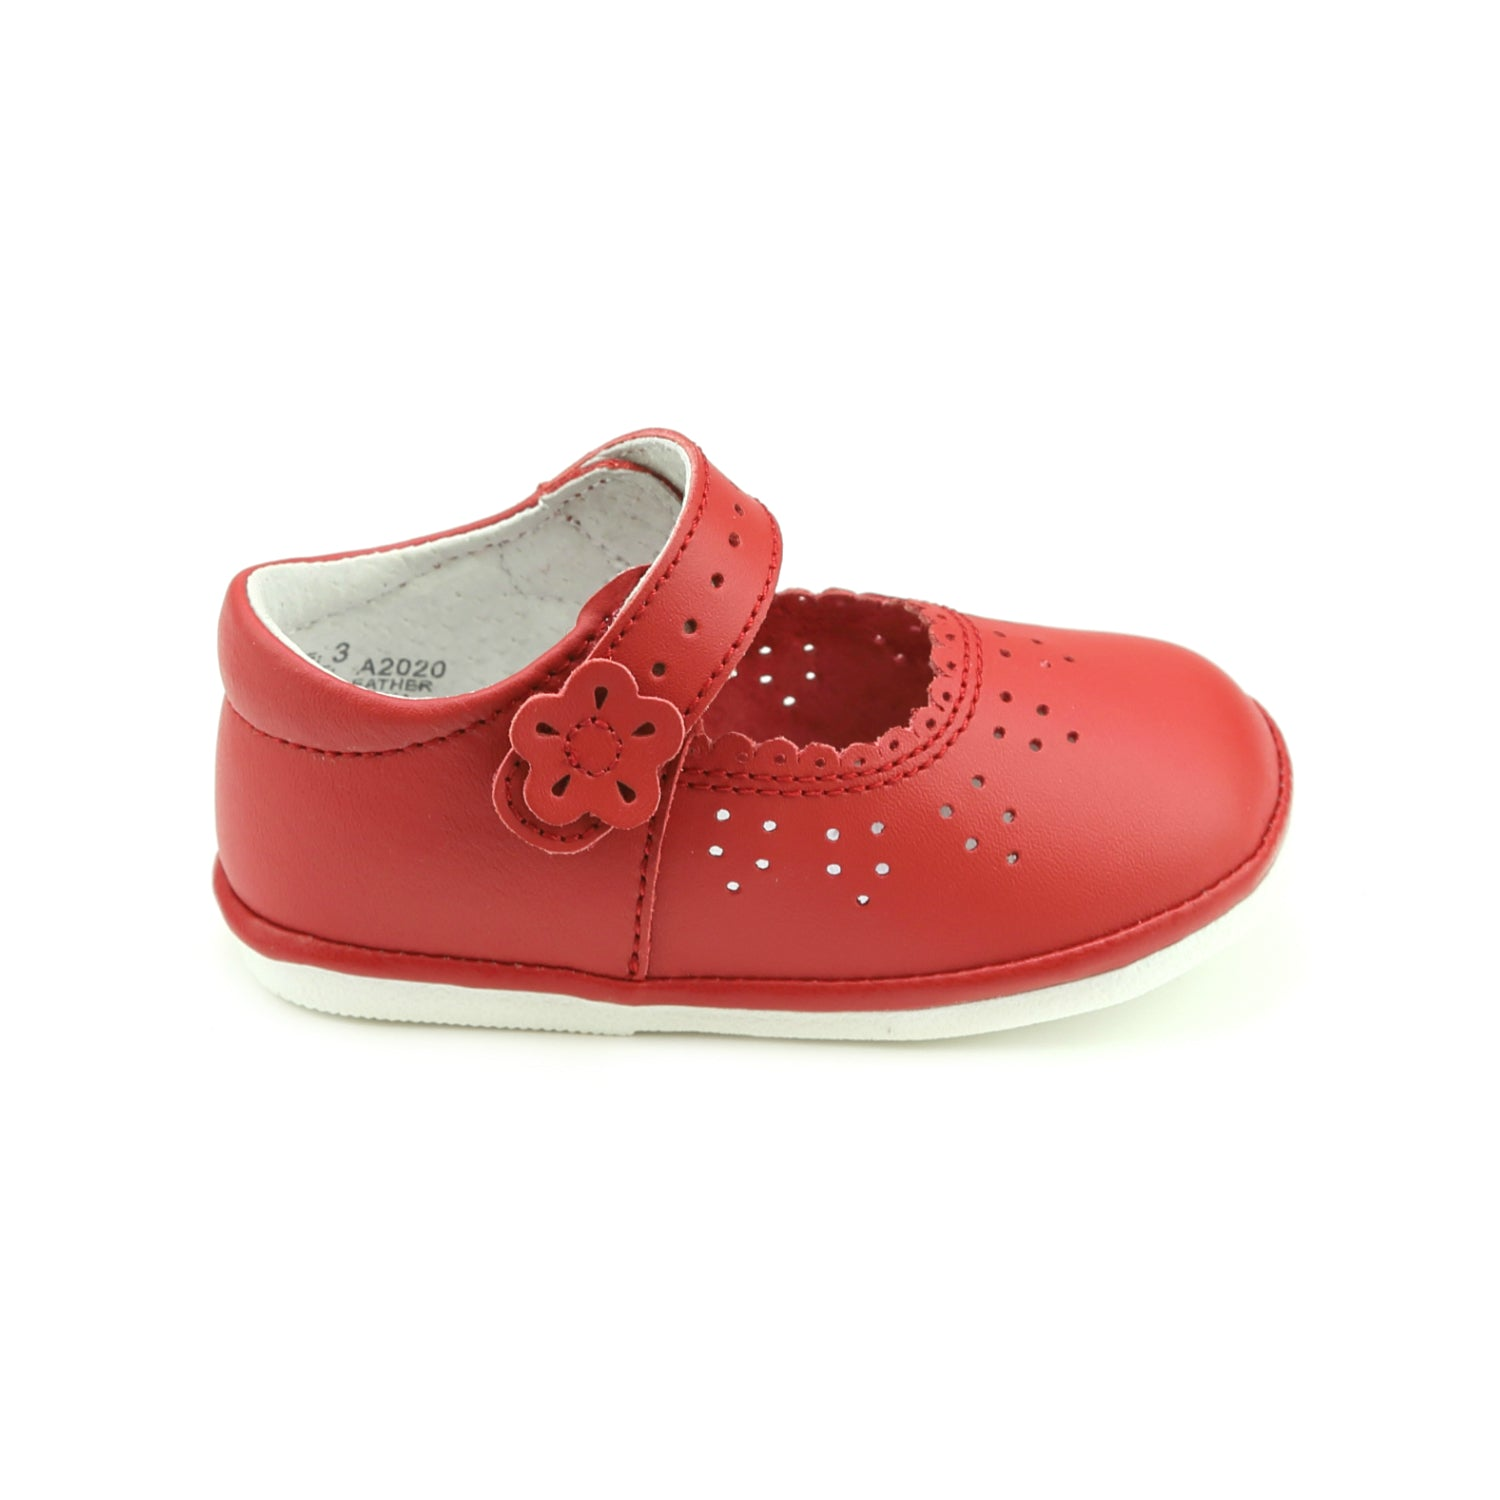 Girls Mary Jane Leather baby blue shoe with side bow